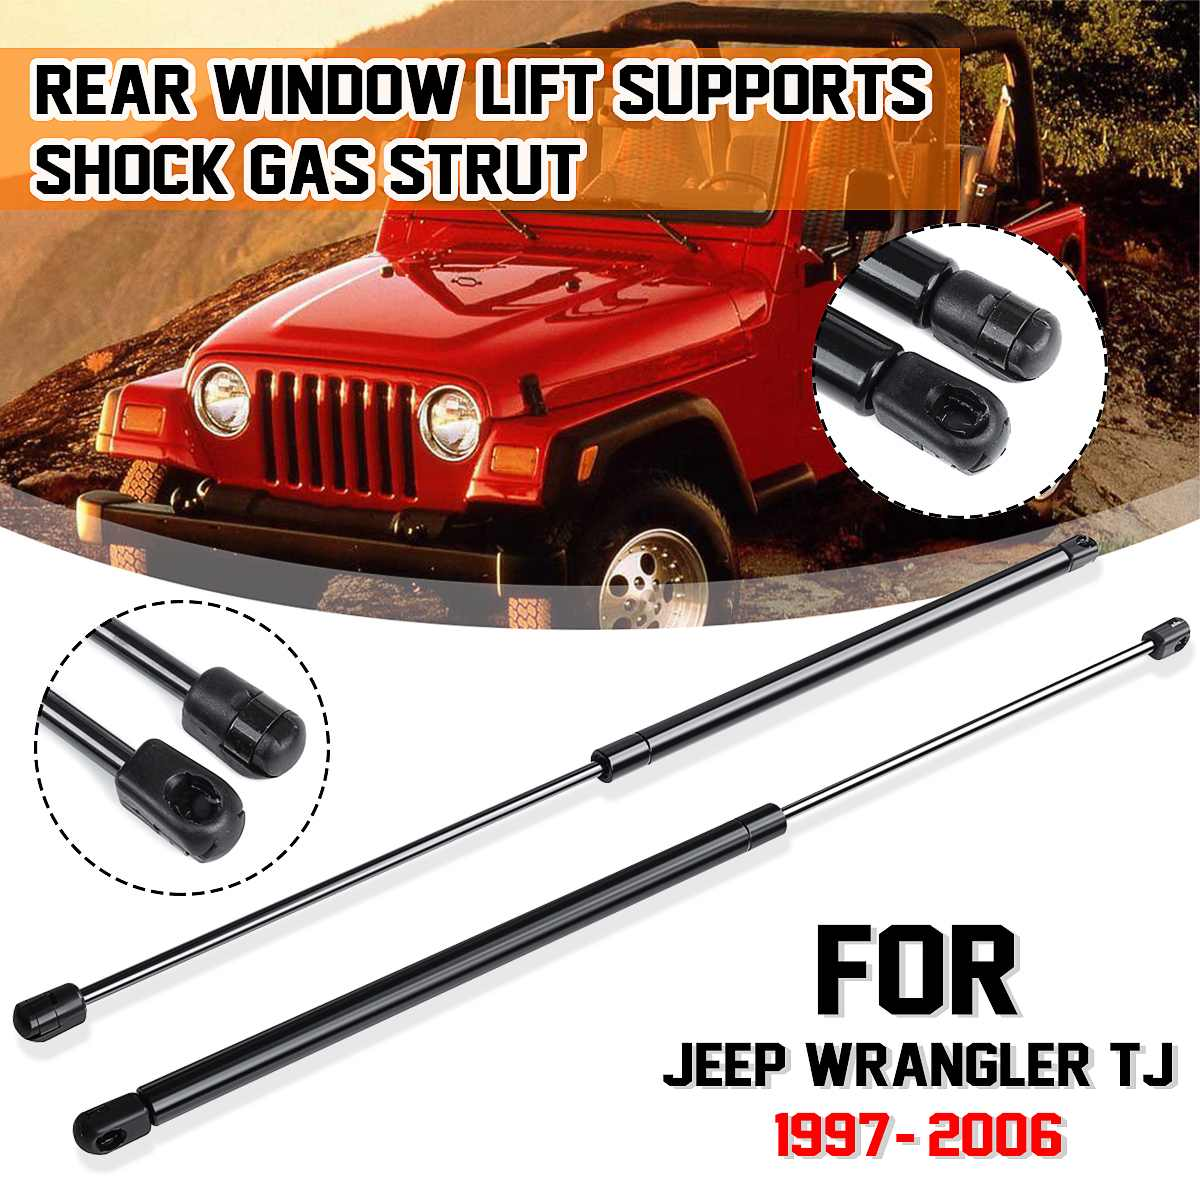 2 New Trunk Gas Lift Supports Struts Prop Rod Shocks Chevrolet Monte Carlo 1987